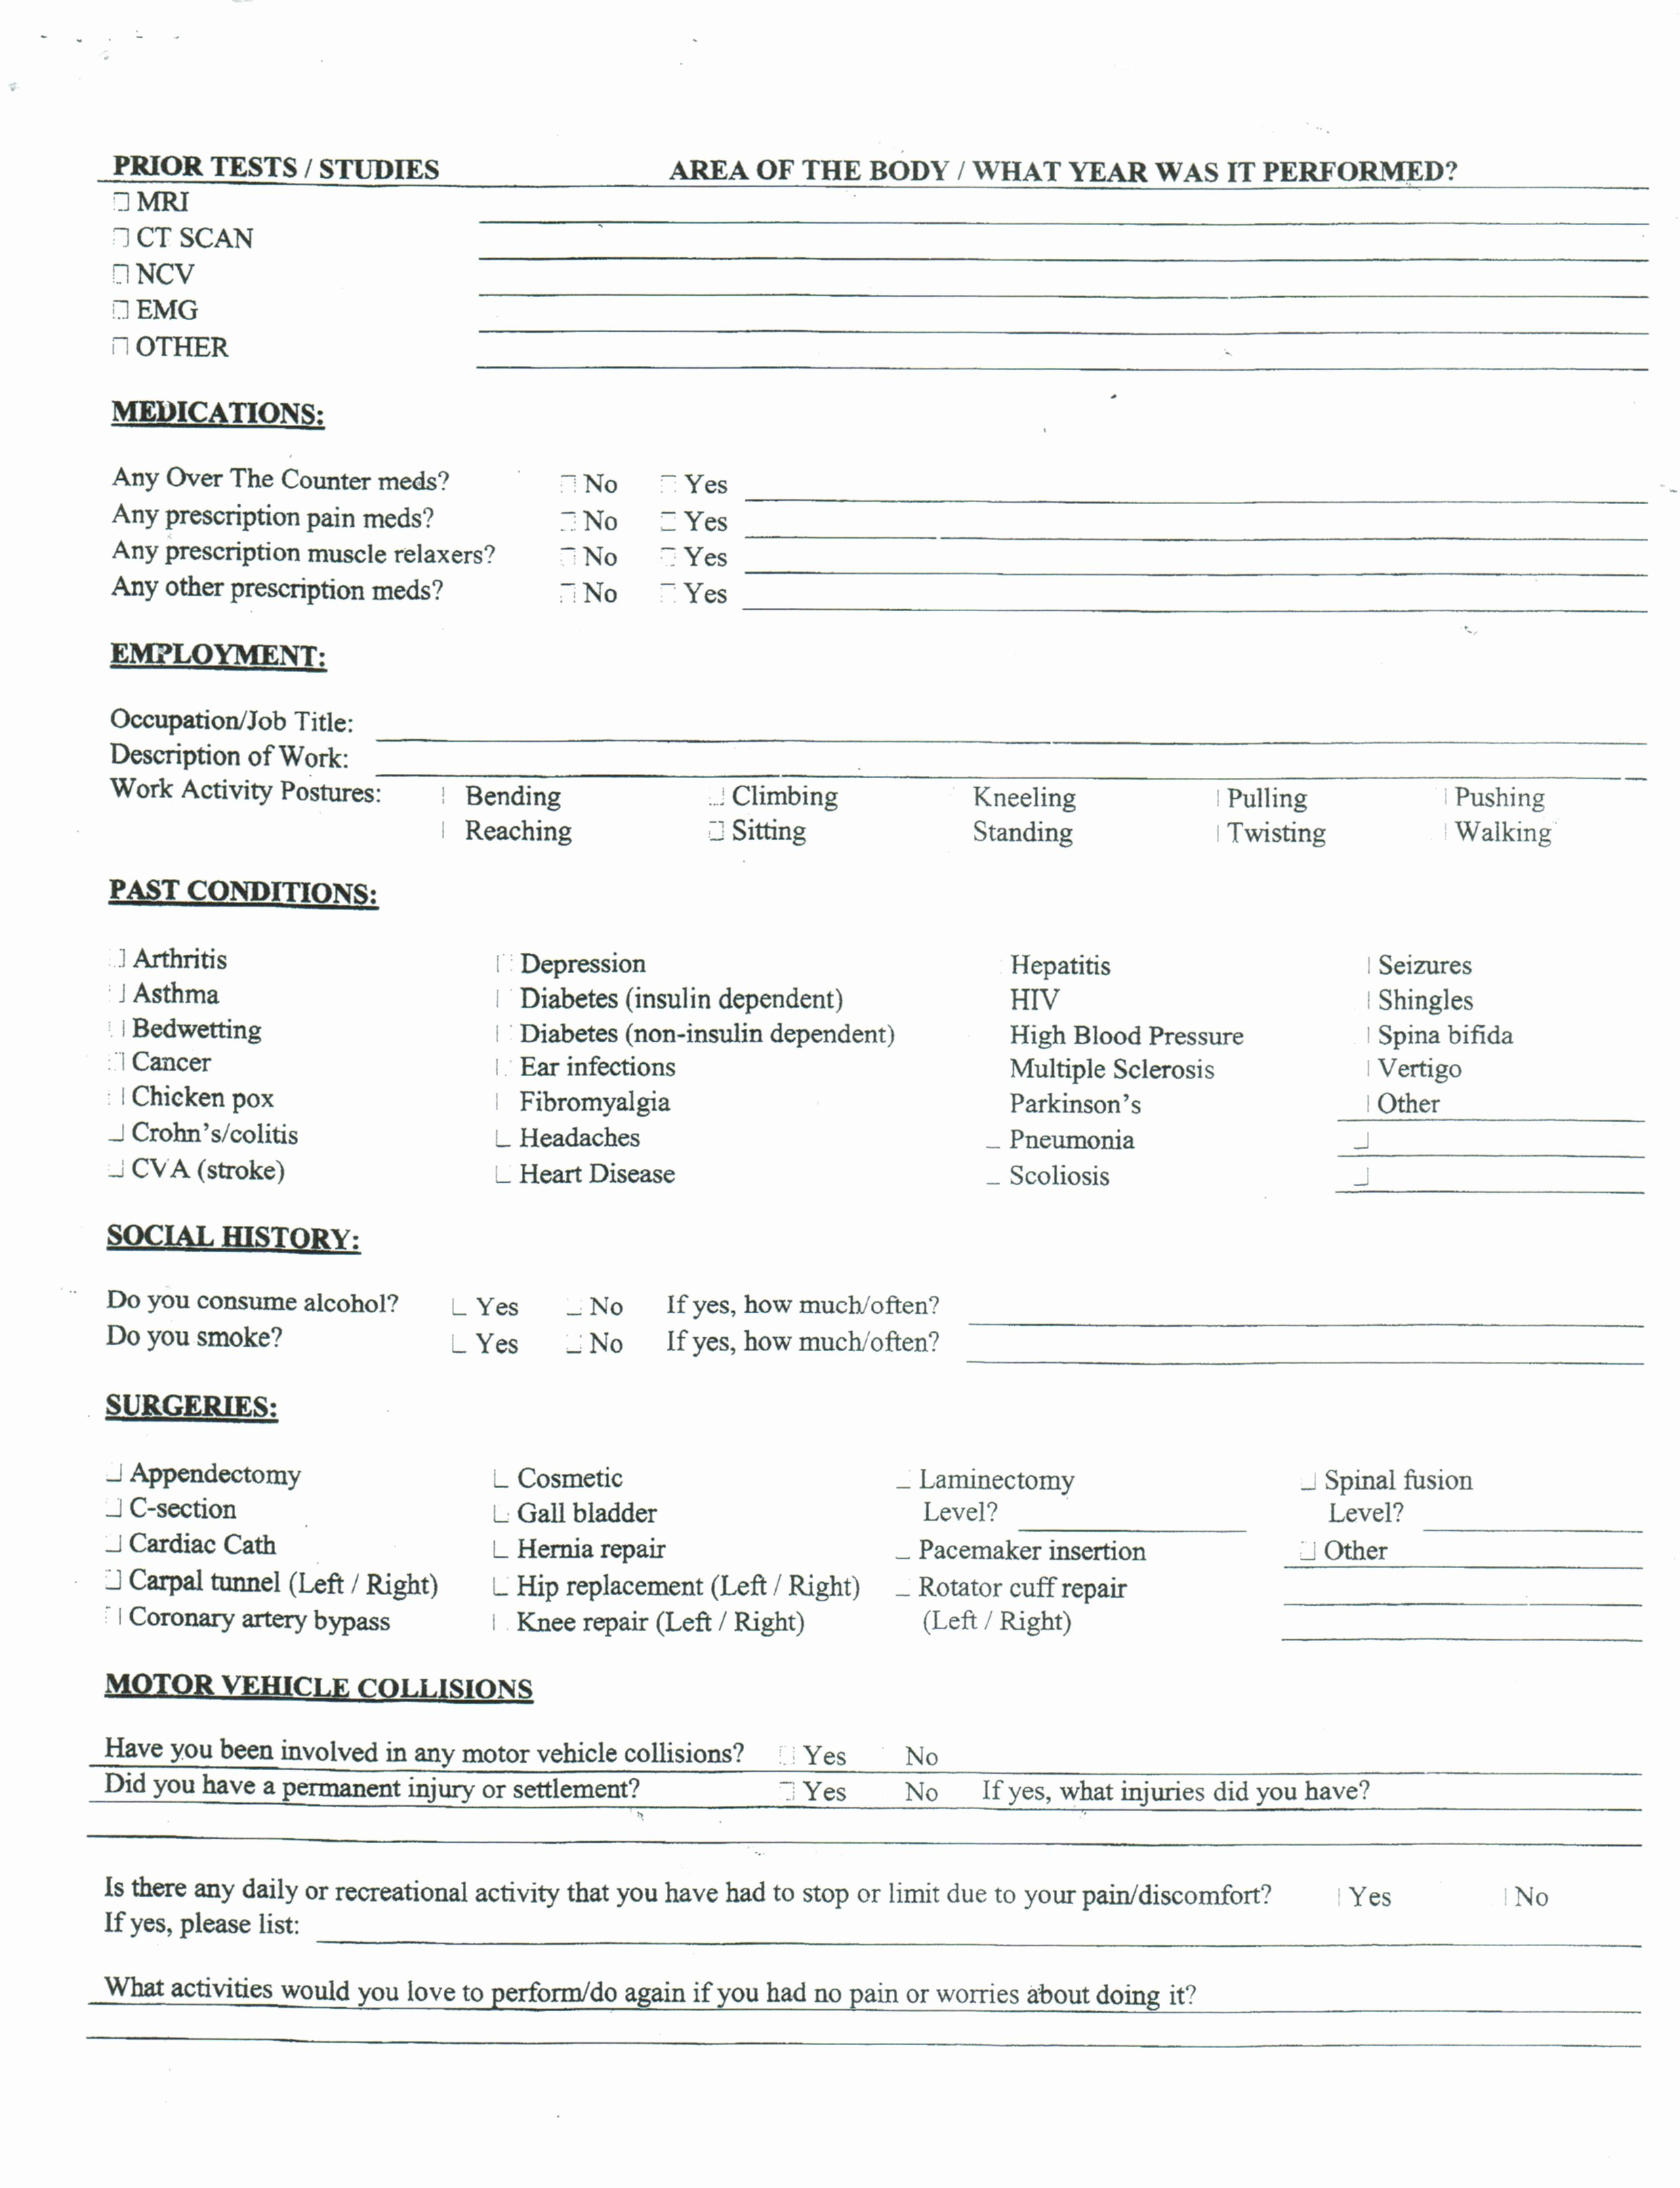 20 Beautiful Chiropractic Intake forms Charityguardfo